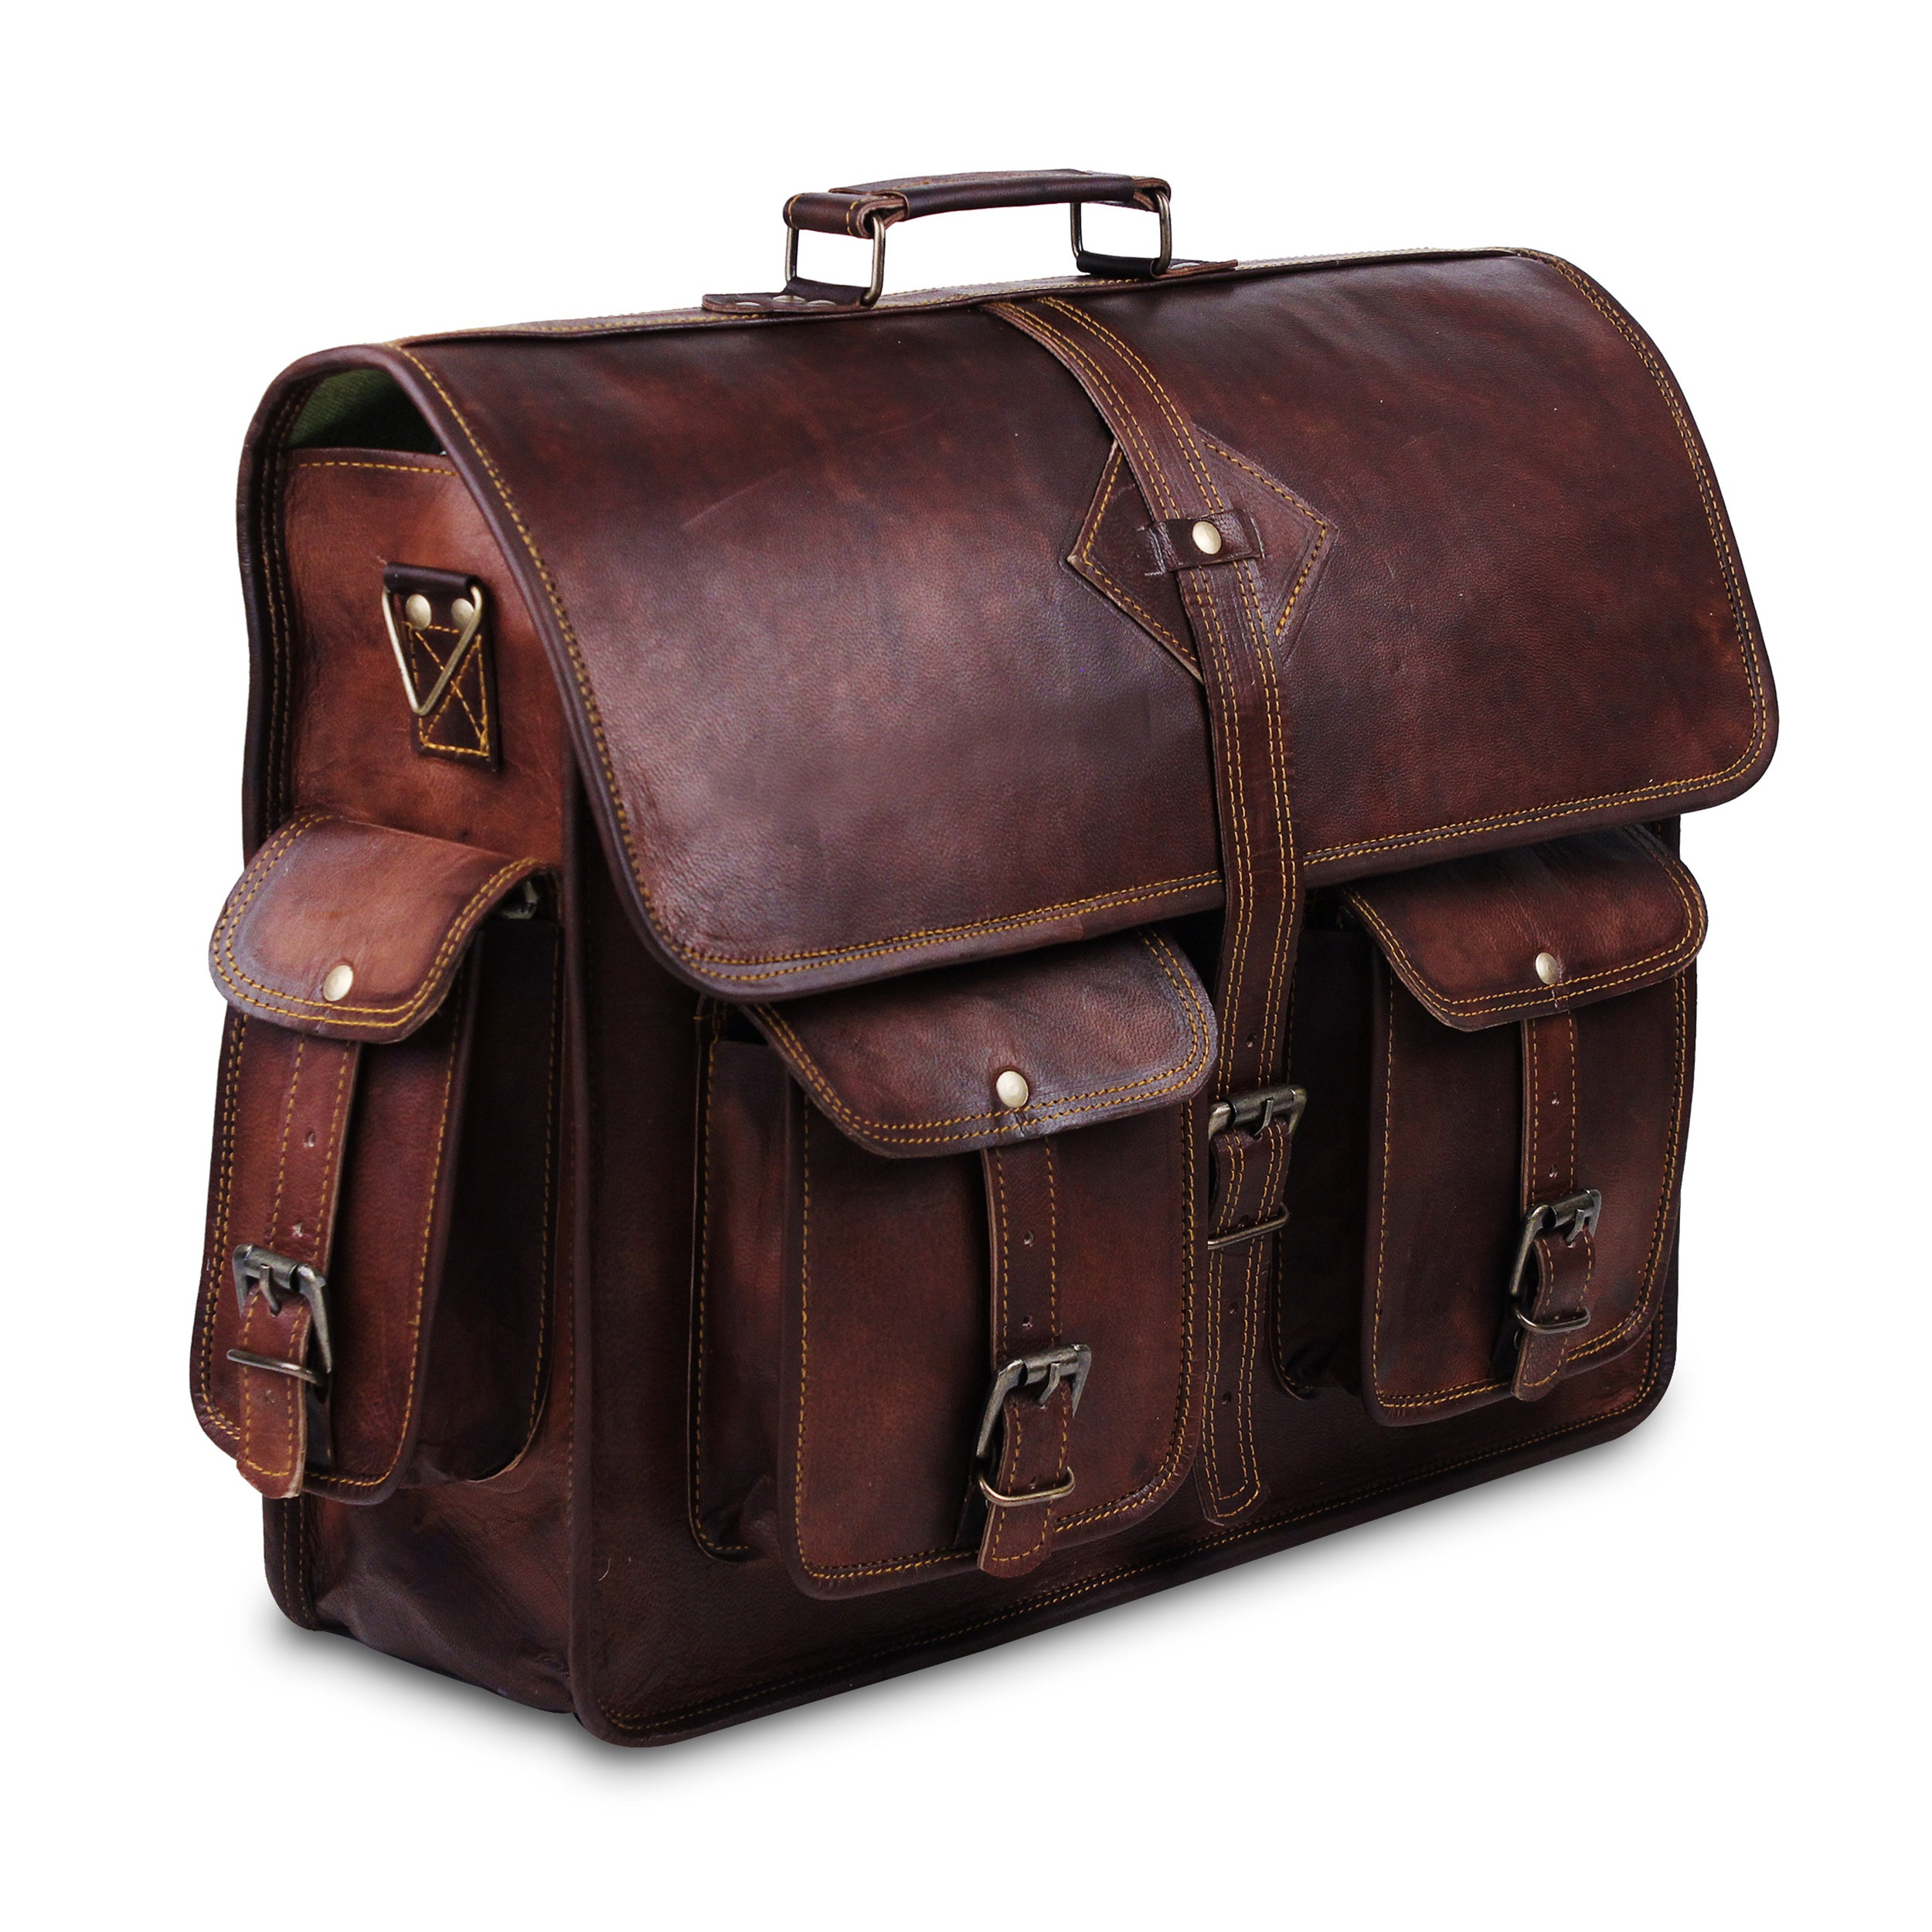 Full Grain Large Messenger Bag with Top Handle